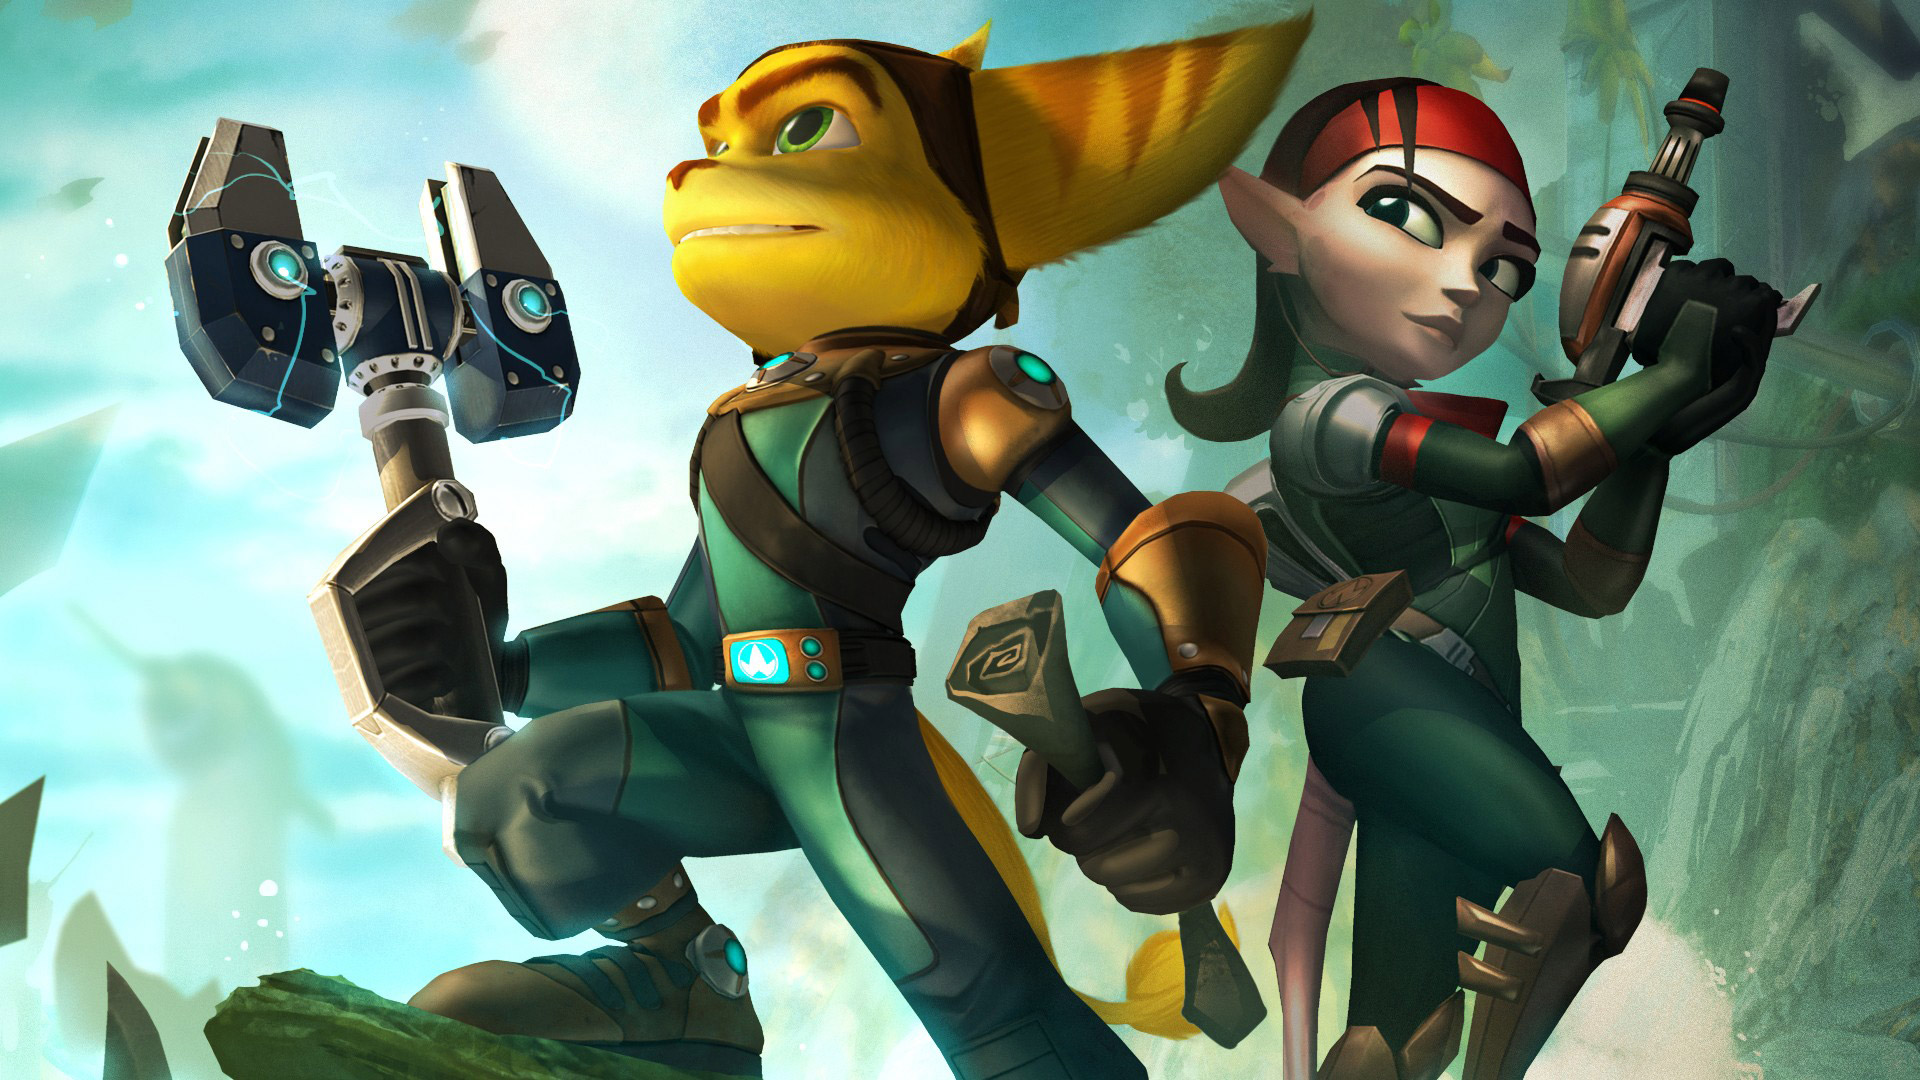 Free Ratchet & Clank Future: Quest for Booty Wallpaper in 1920x1080